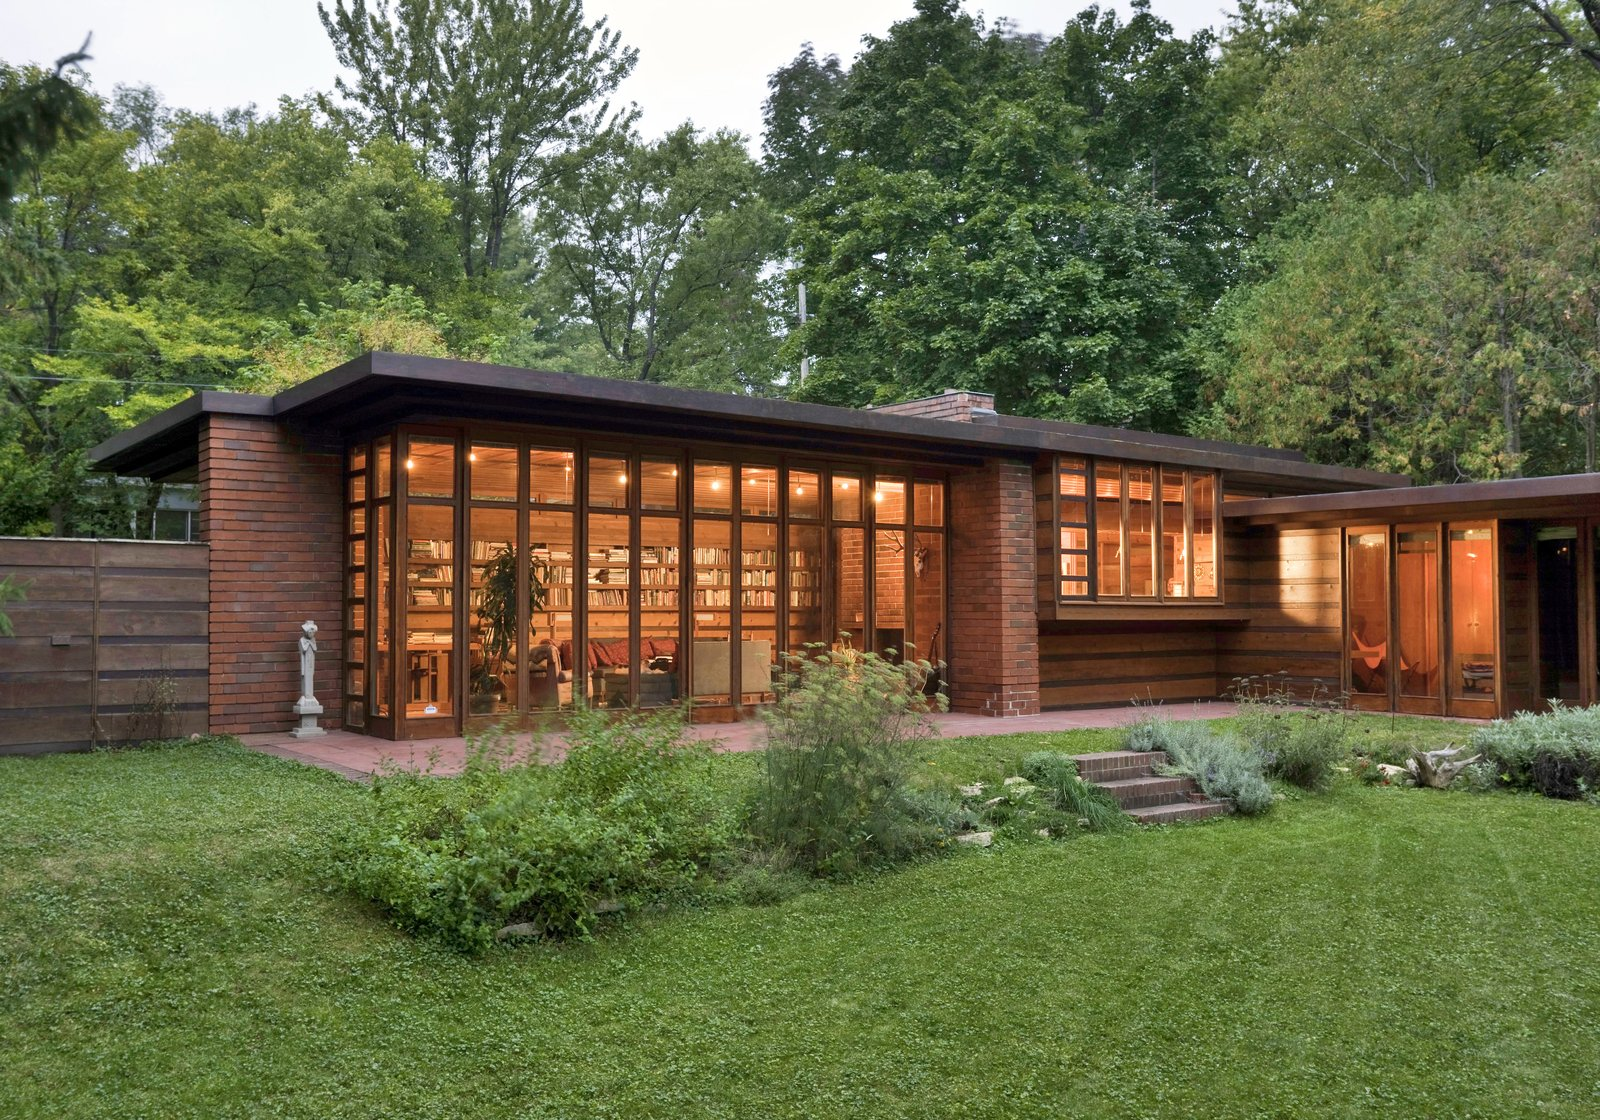 What you need to know about frank lloyd wright 39 s usonian for Frank lloyd wright usonian home plans